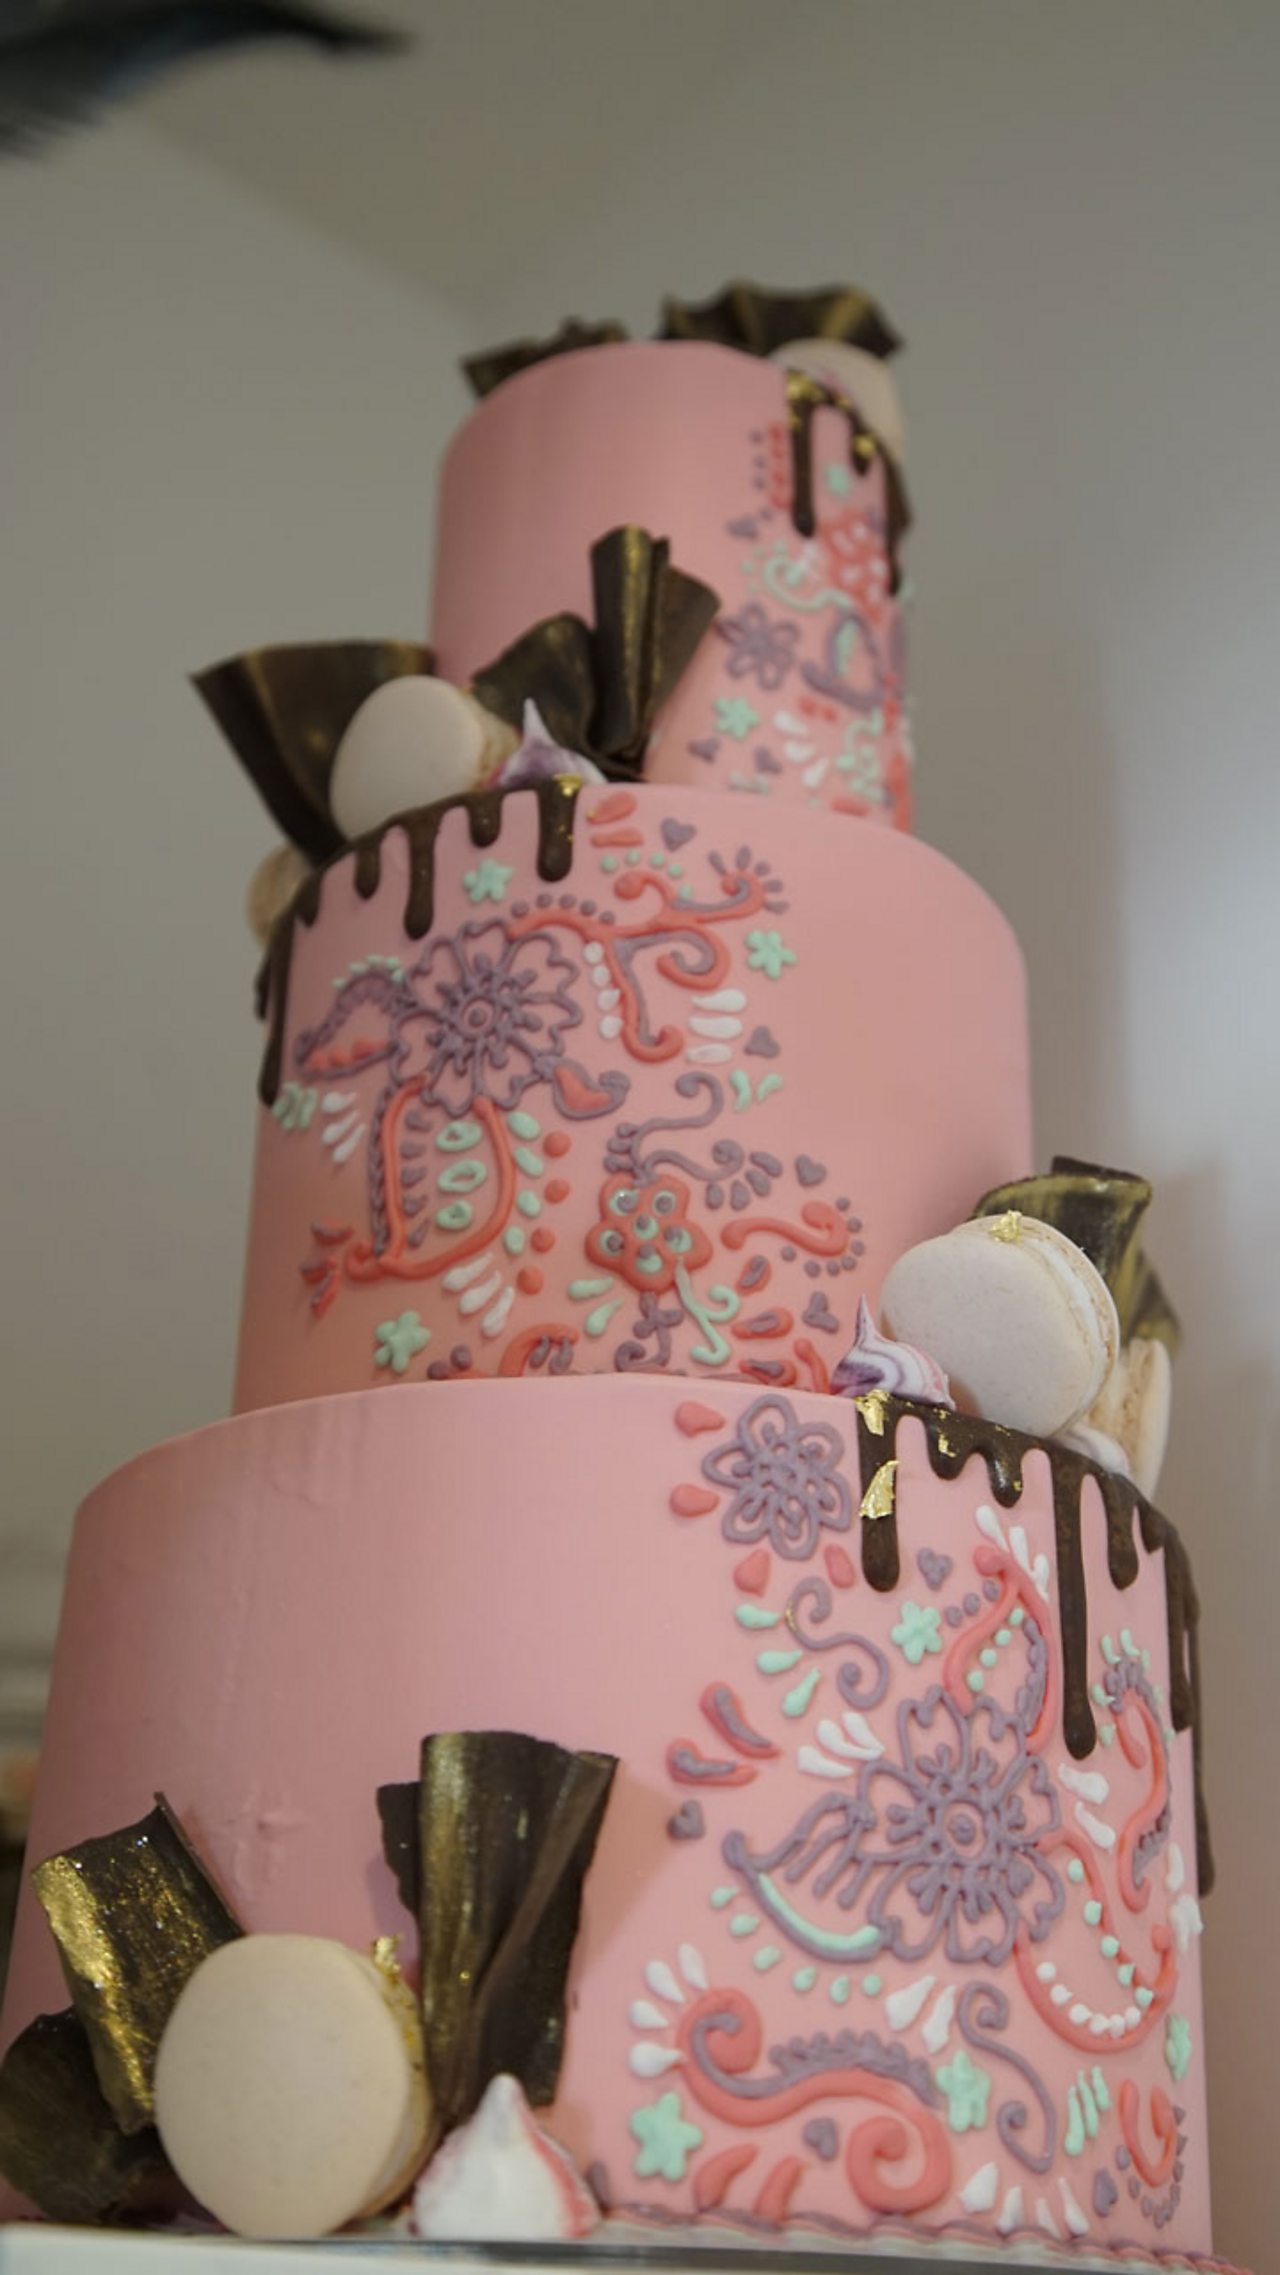 A decorative pink cake Georgia has made.